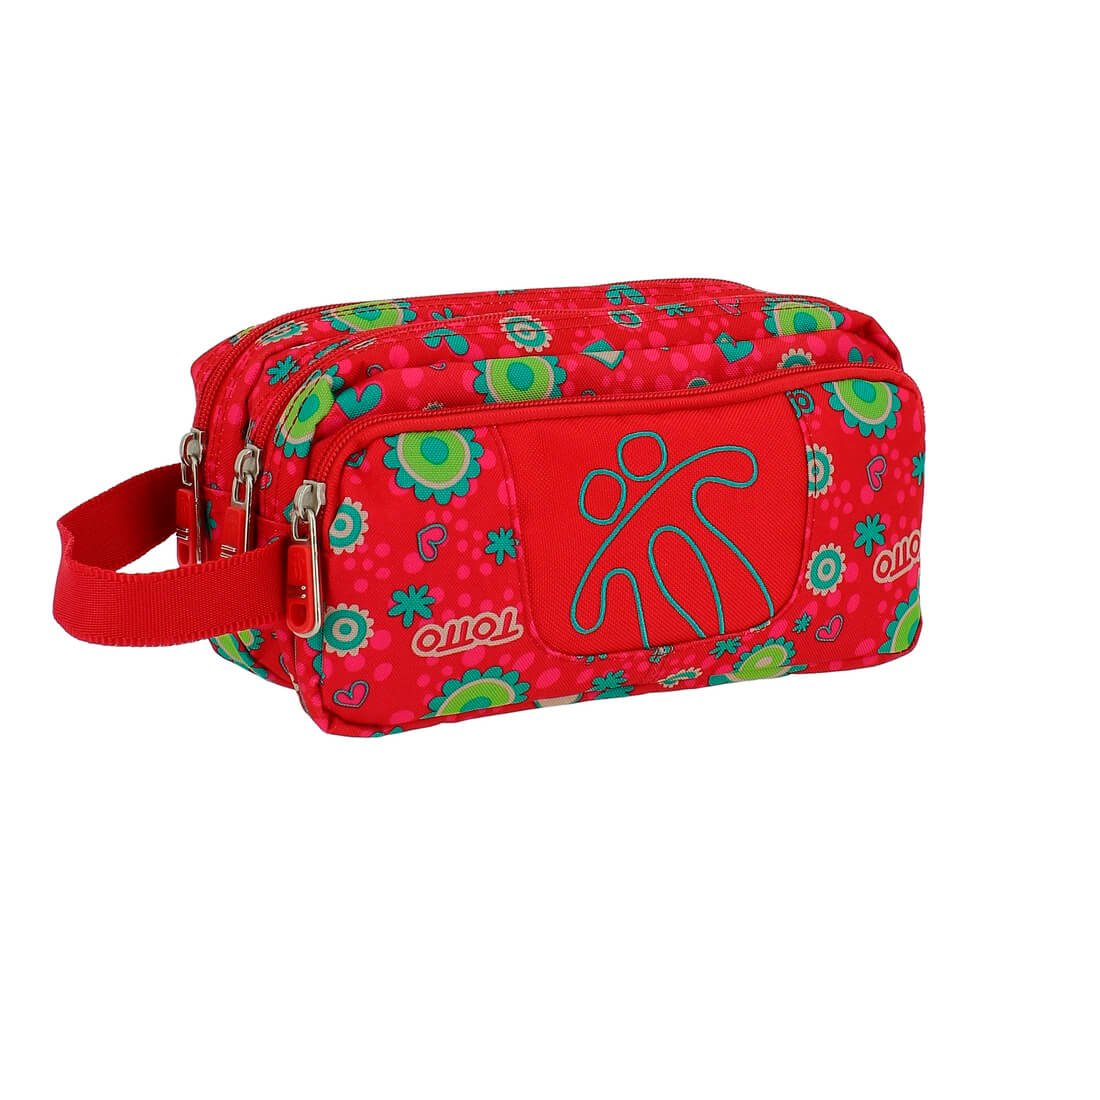 Amazon.com: TOTTO Escolar Pencil Cases, 23 cm, Red (Rojo ...